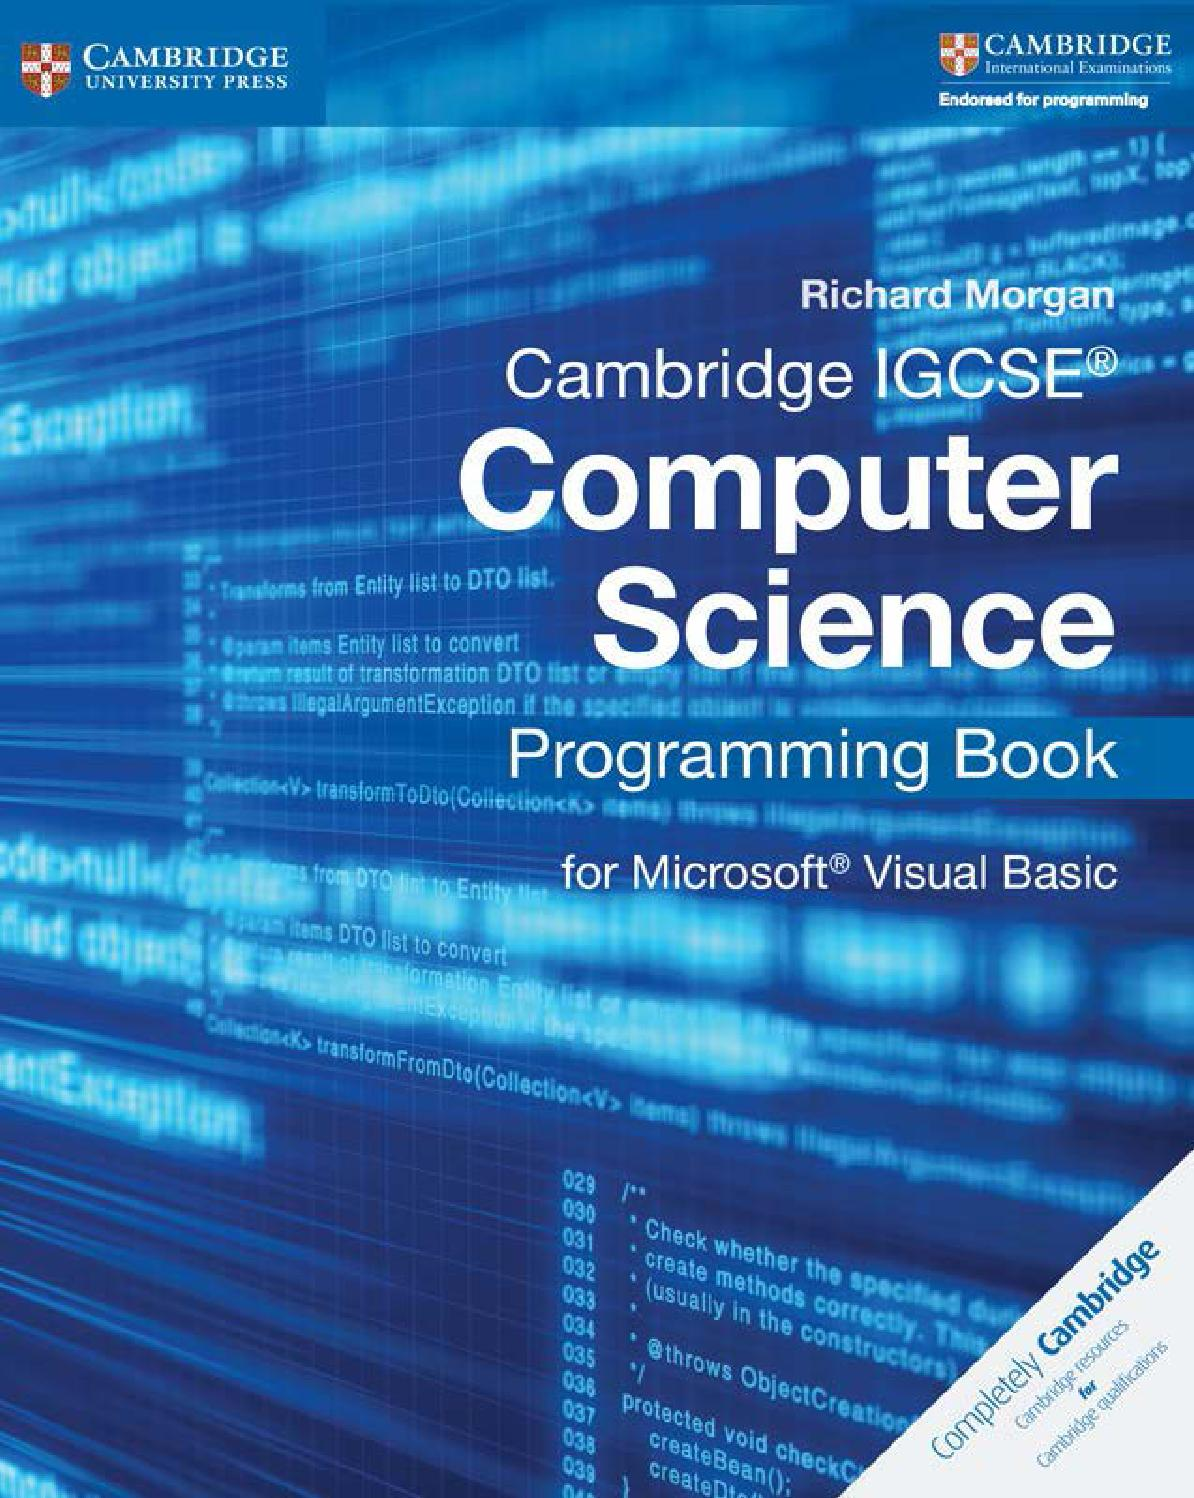 Preview Cambridge IGCSE® Computer Science: Programming Book